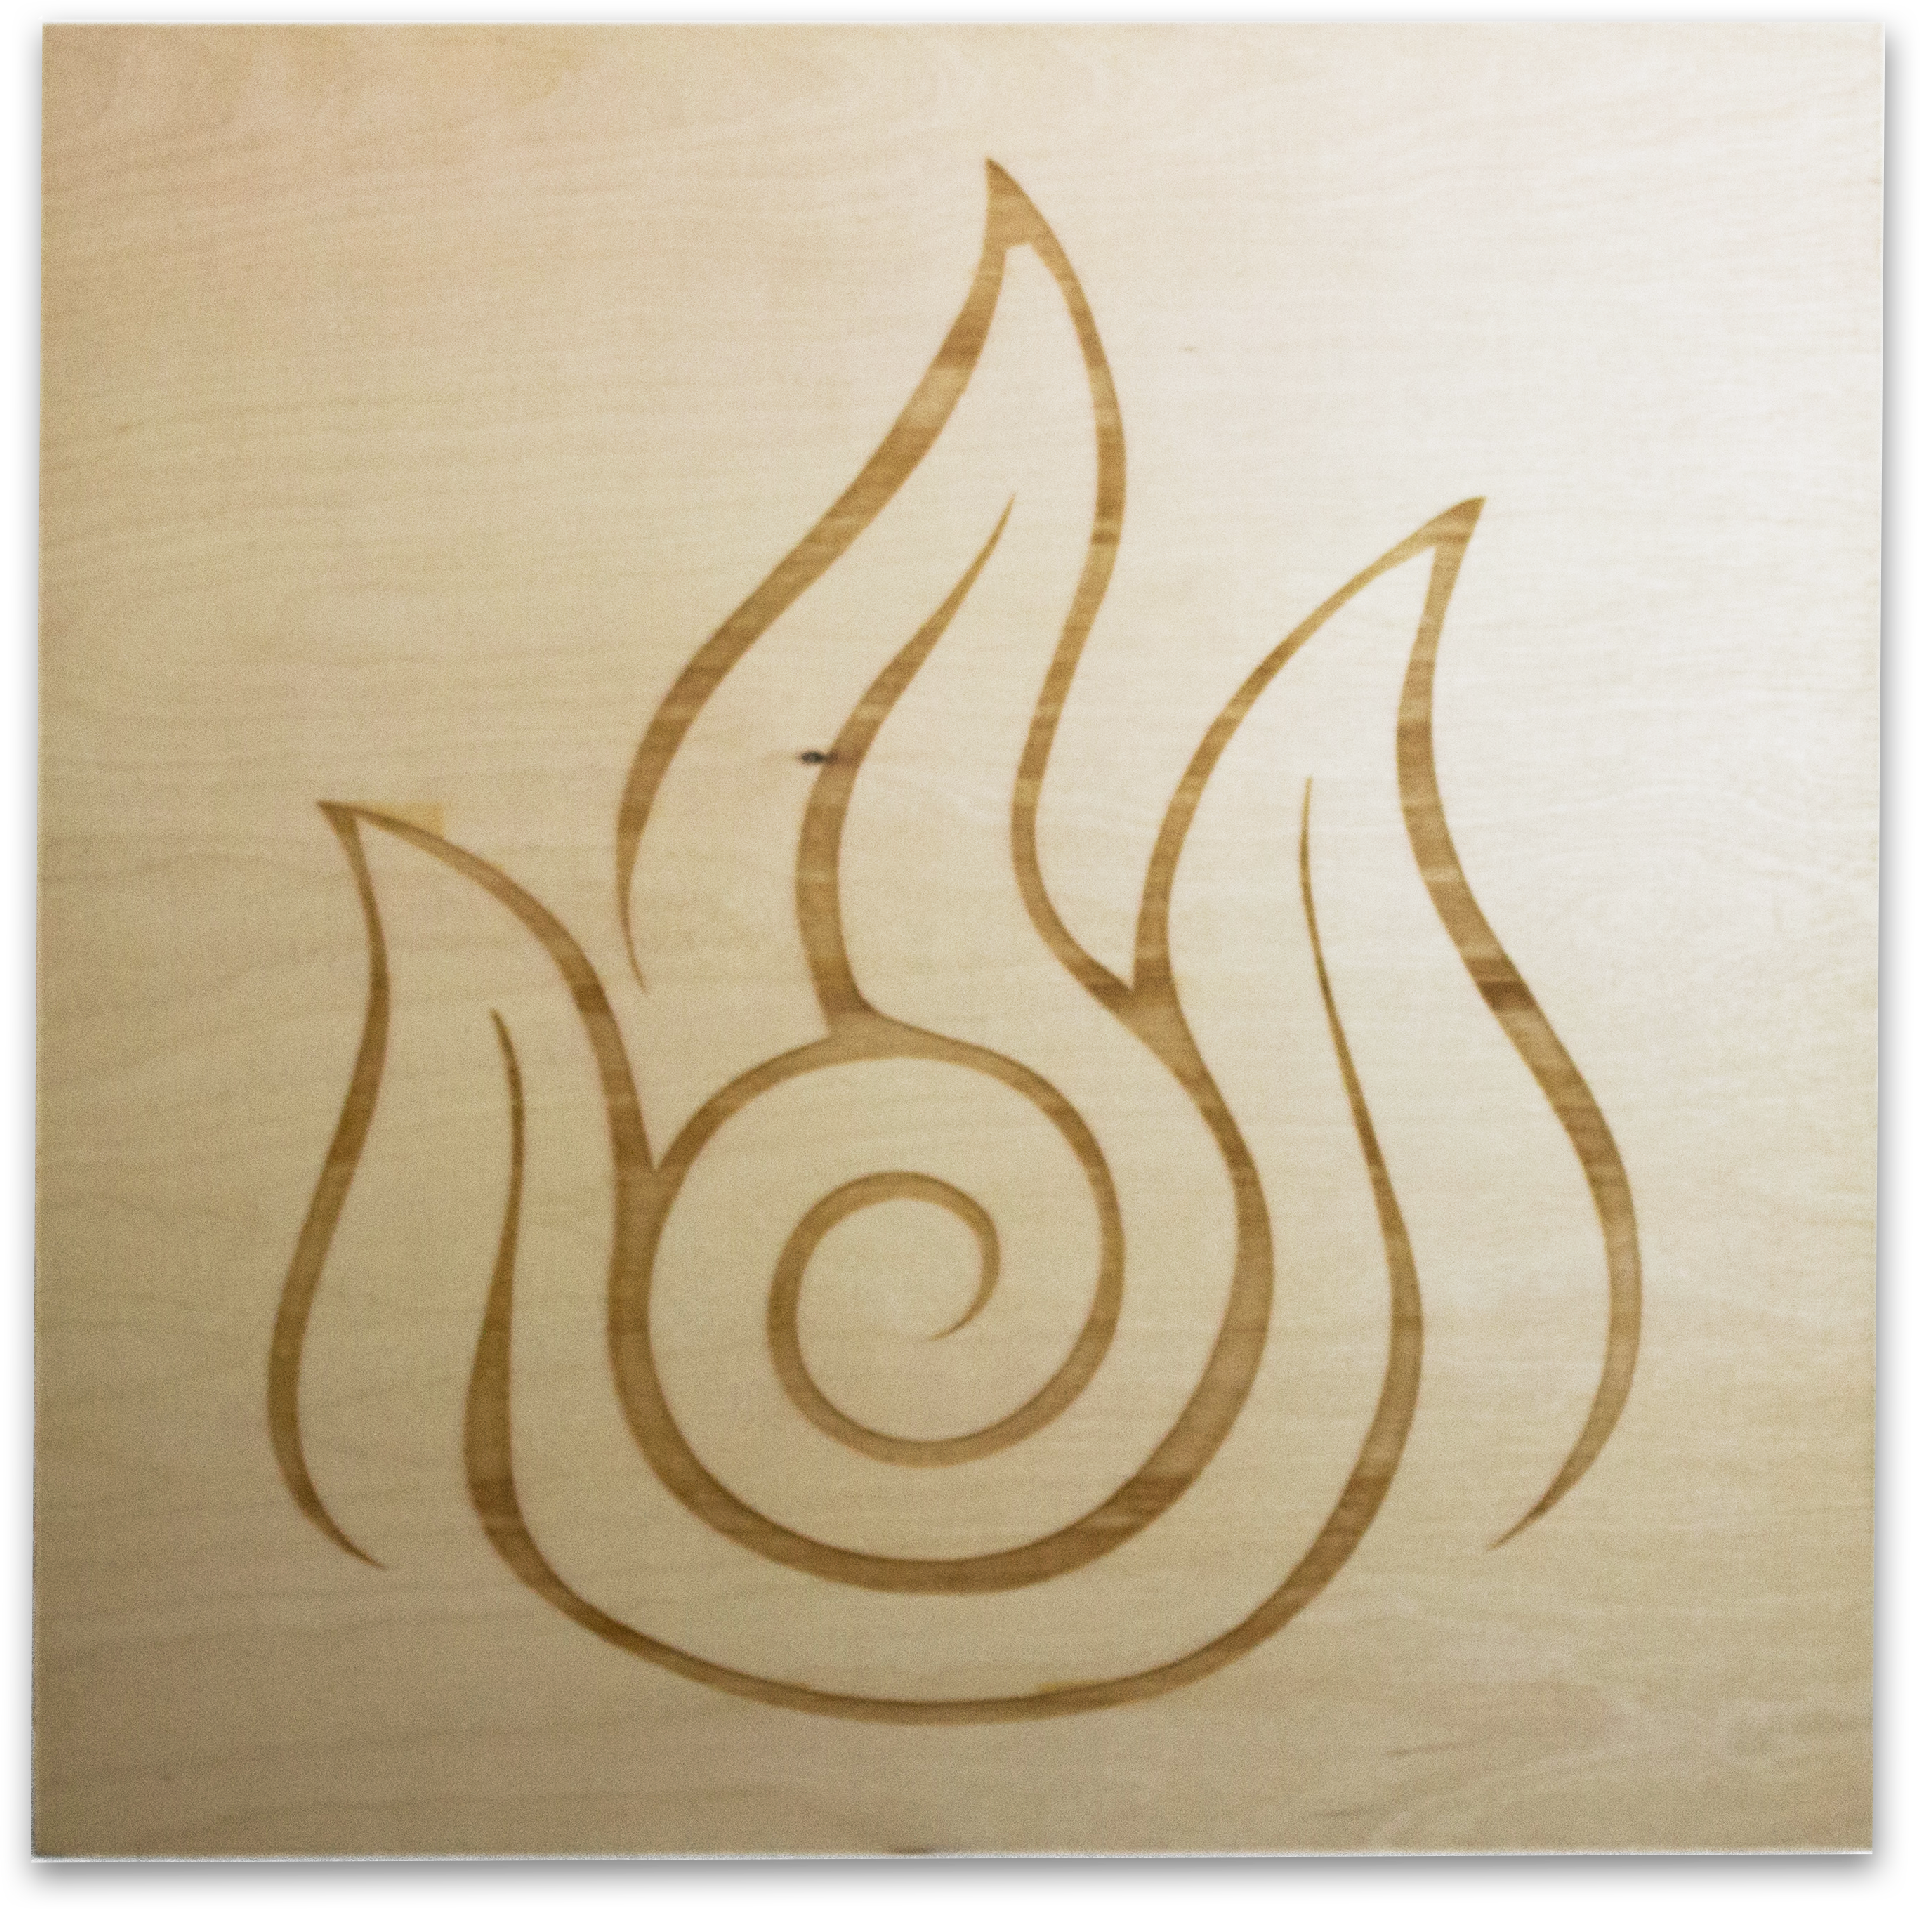 &quot;Fire is the element of power. The people of the Fire Nation have desire and will and the energy and drive to achieve what they want.&quot;<br>&mdash;Iroh